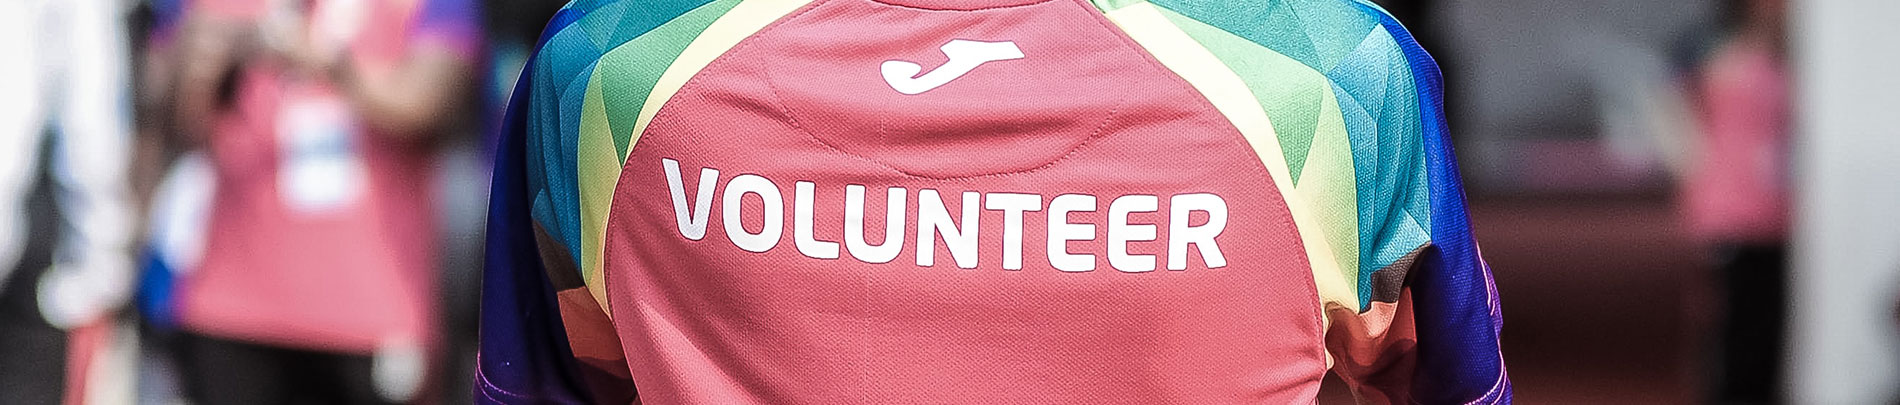 A person wearing a colourful t-shirt that says volunteer across the back.